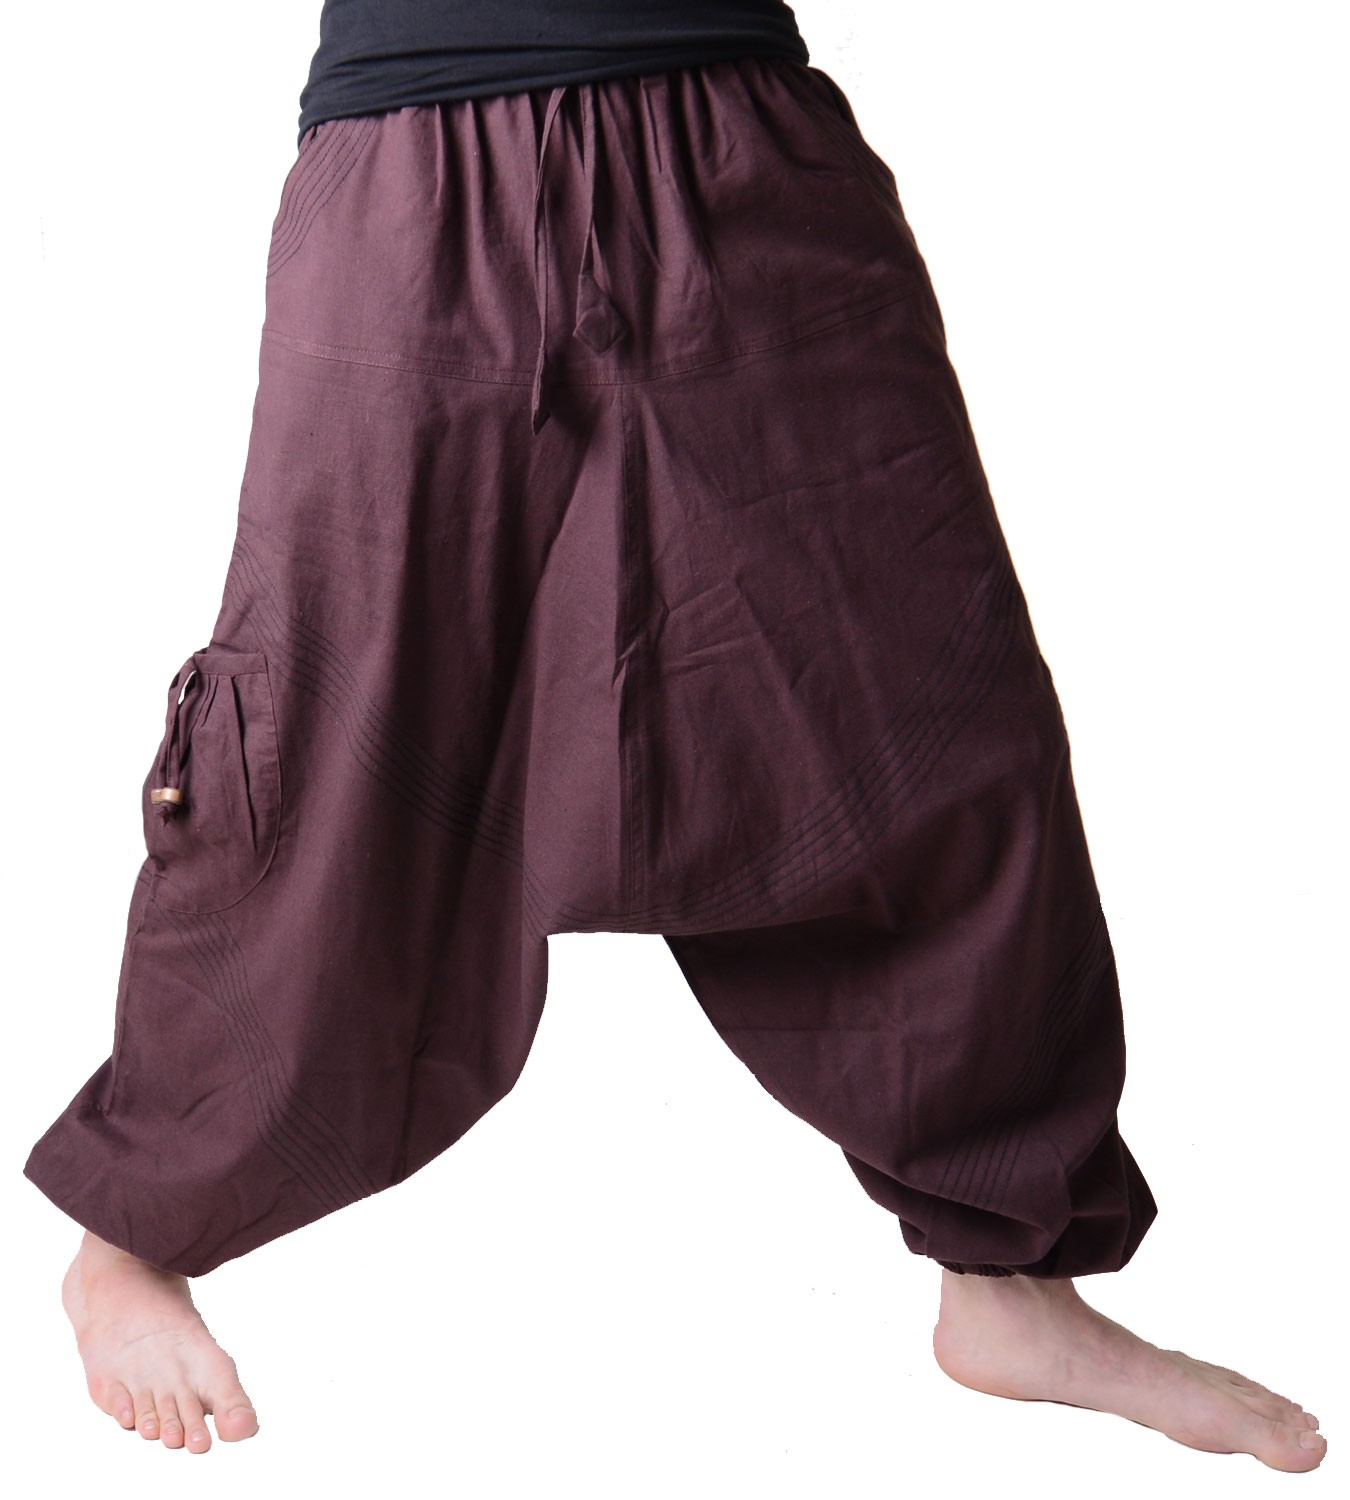 mens harem pants in classic colors ebay